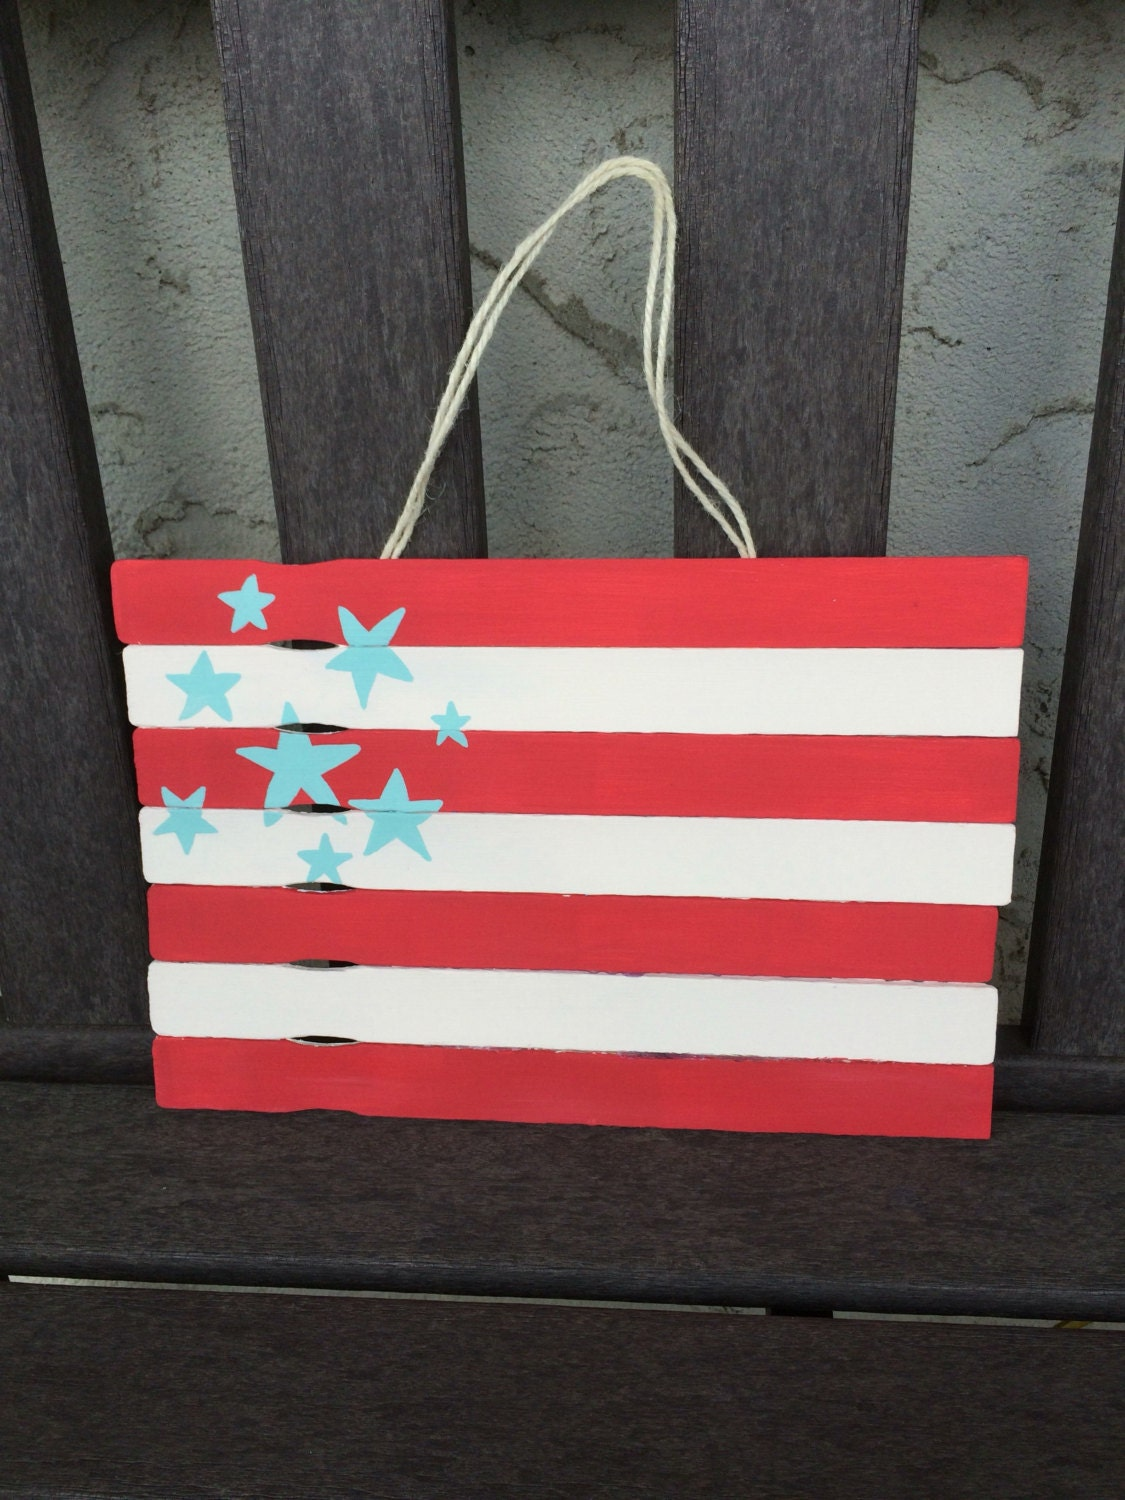 Hand painted stars and stripes wall decor by Stars and stripes home decor